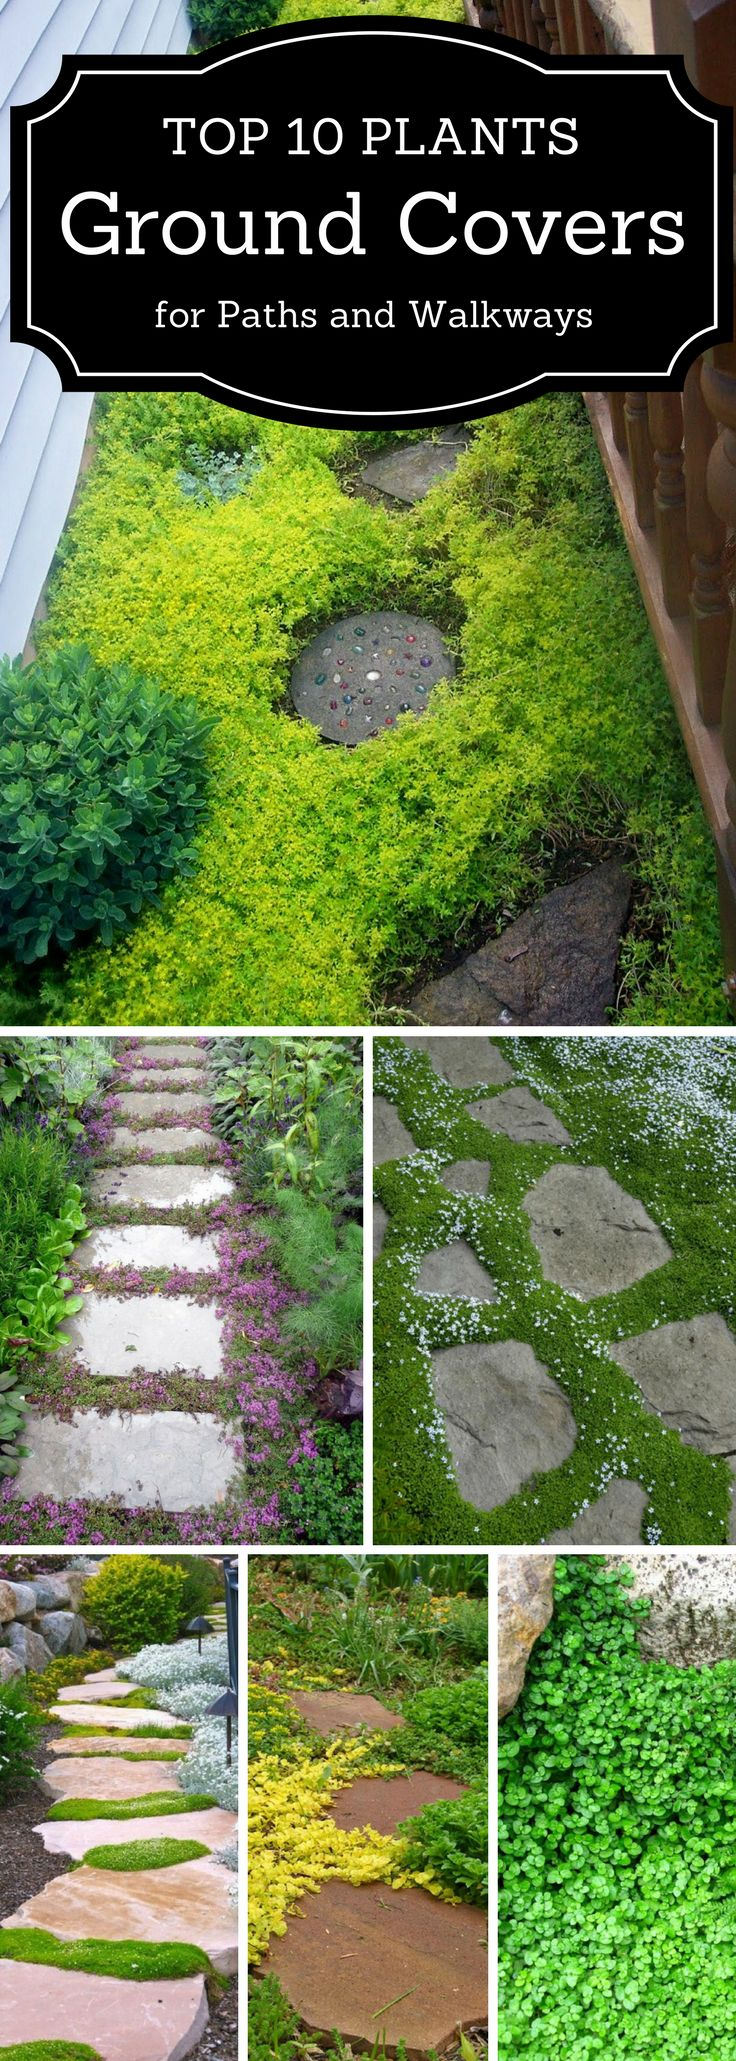 best 25+ ground cover plants ideas on pinterest | ground covering ... - Patio Ground Cover Ideas